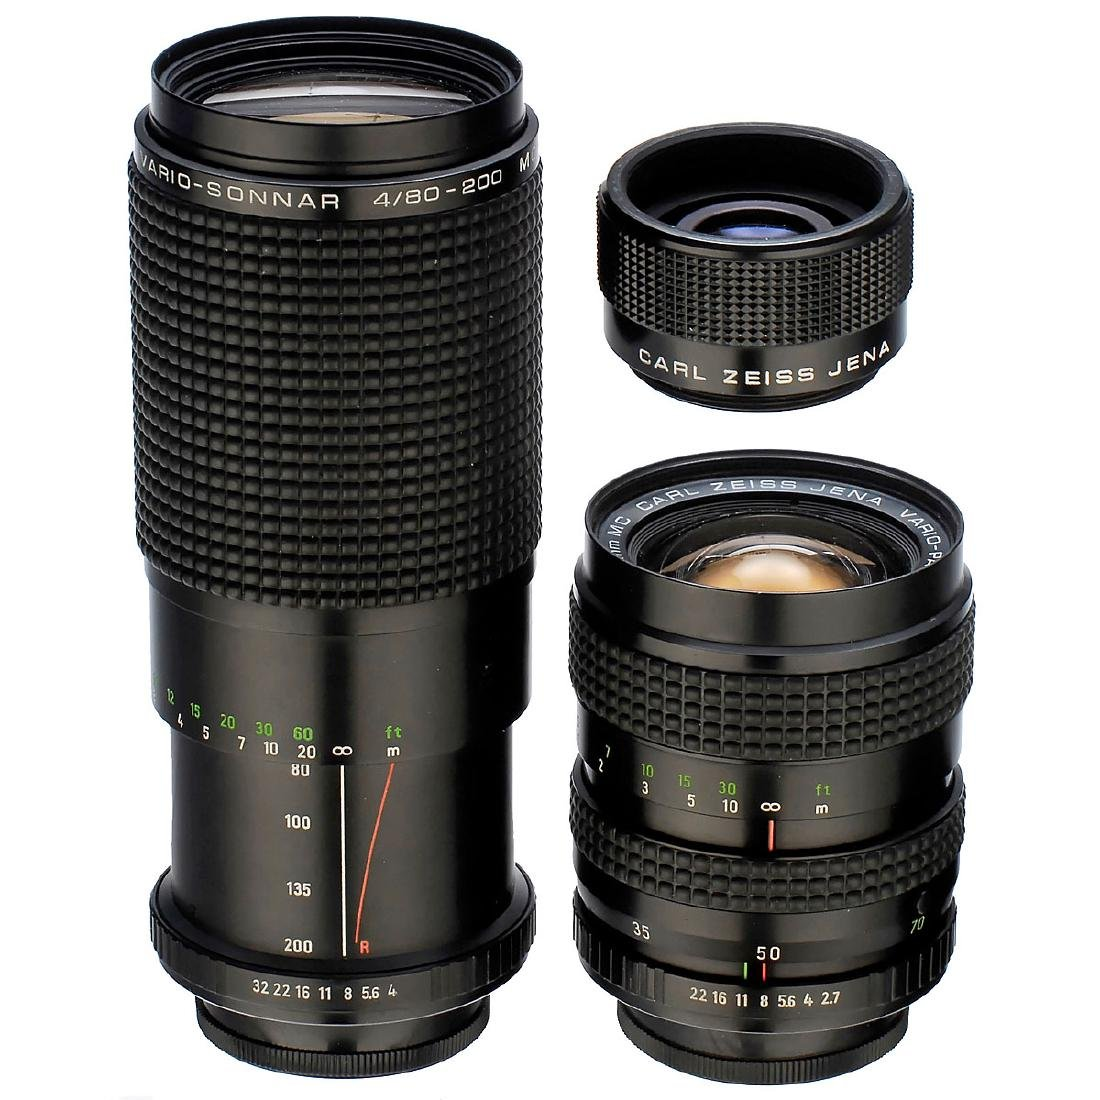 3 Carl Zeiss Lenses with M42 Screw-Mounts